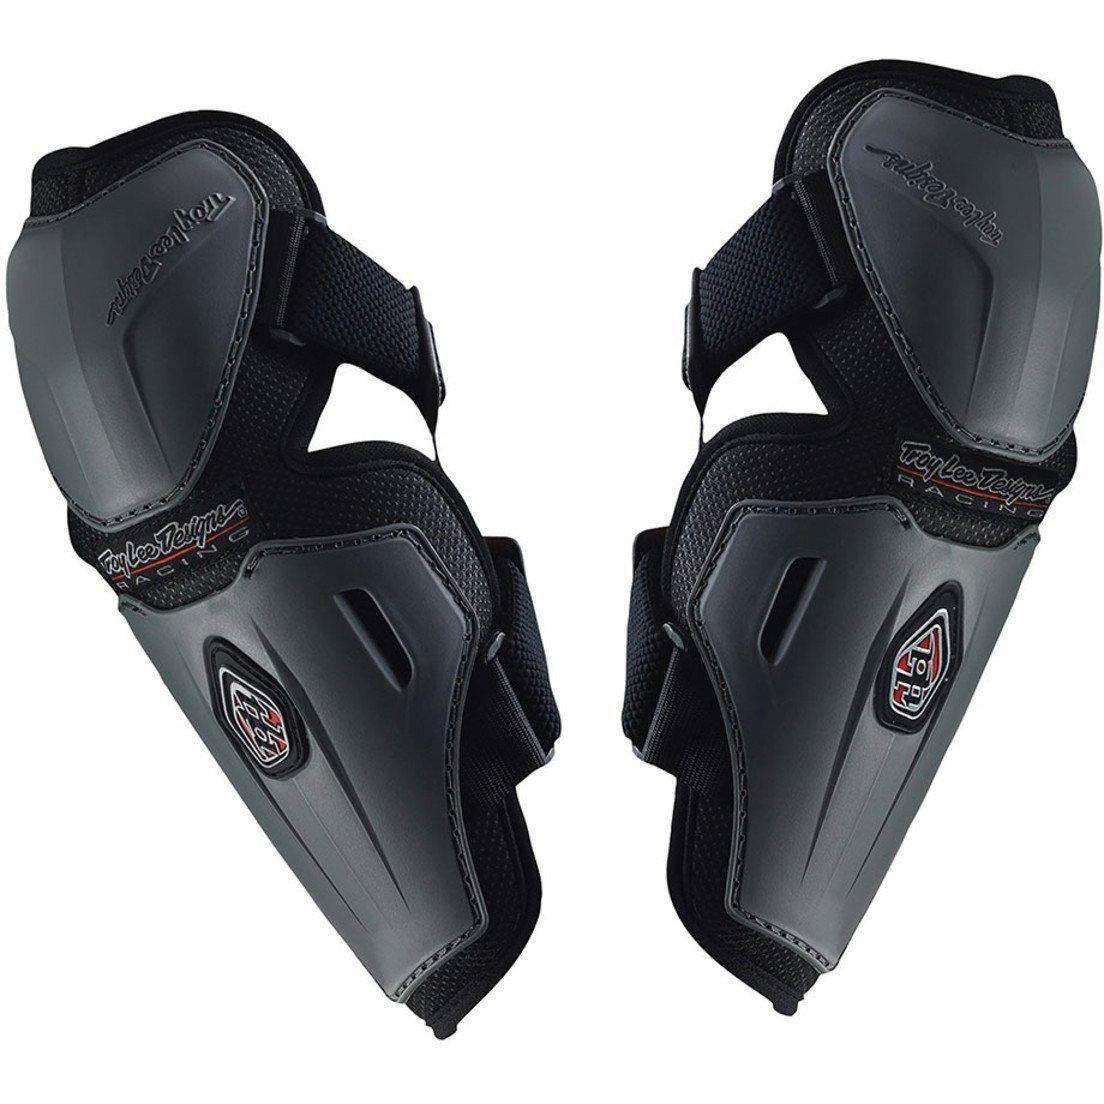 Troy Lee Designs-Troy Lee Designs Youth Elbow Guards Long-GRAY-YOUTH-TLD546003900-saddleback-elite-performance-cycling